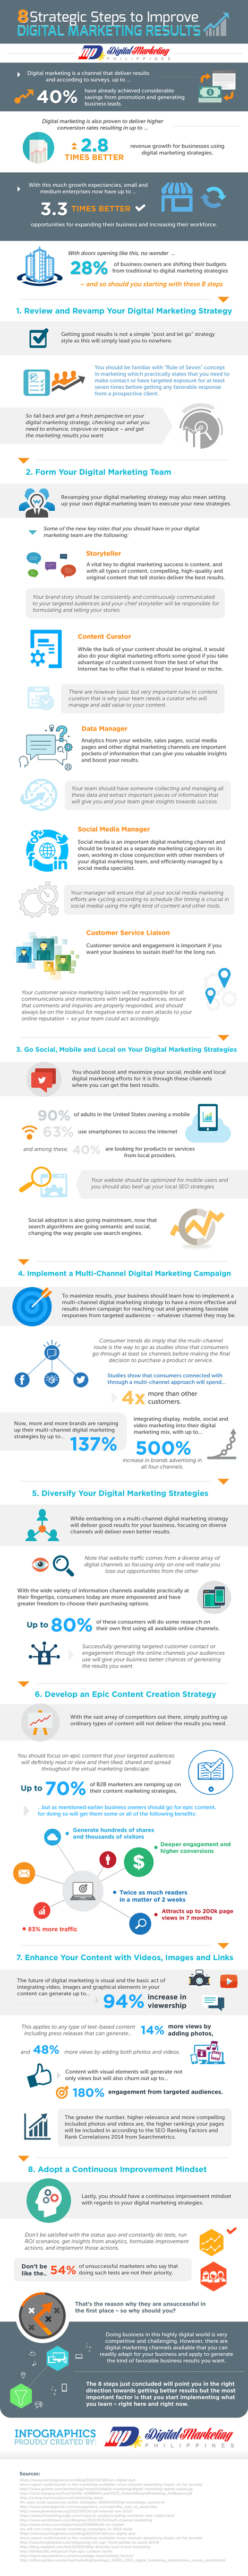 8 Strategic Steps to Improve Digital Marketing Results #Infographic | MarketingHits | Scoop.it